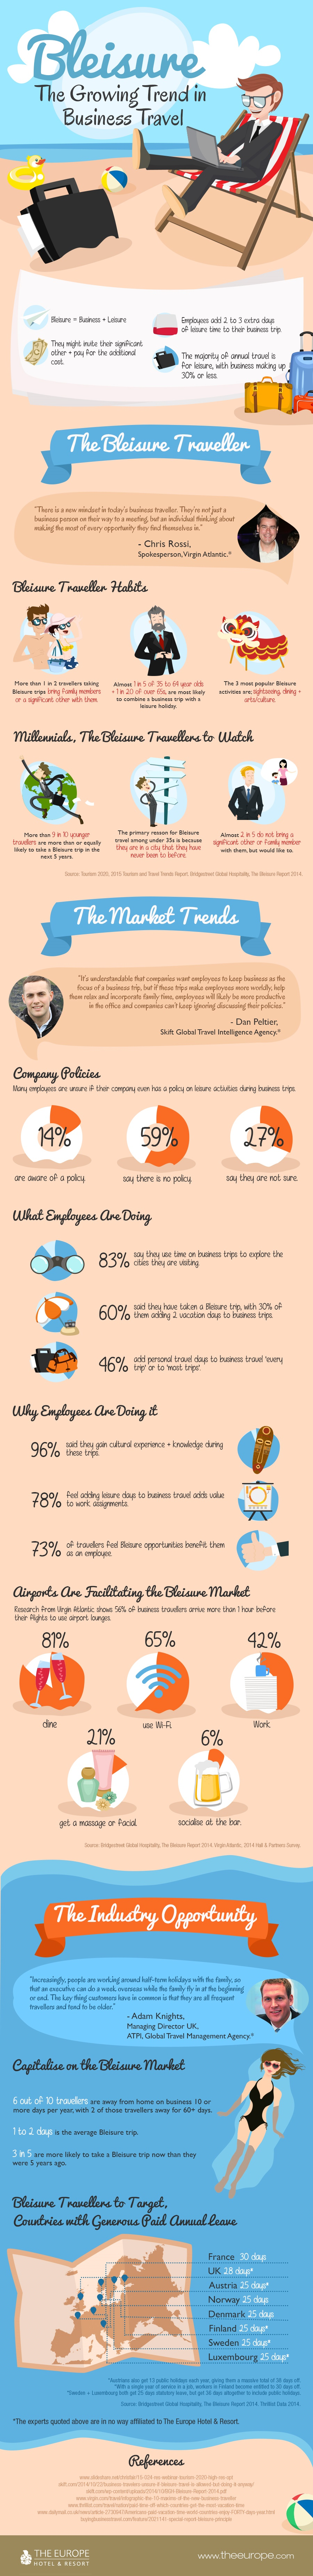 Bleisure, the growing trend in business travel #infographic